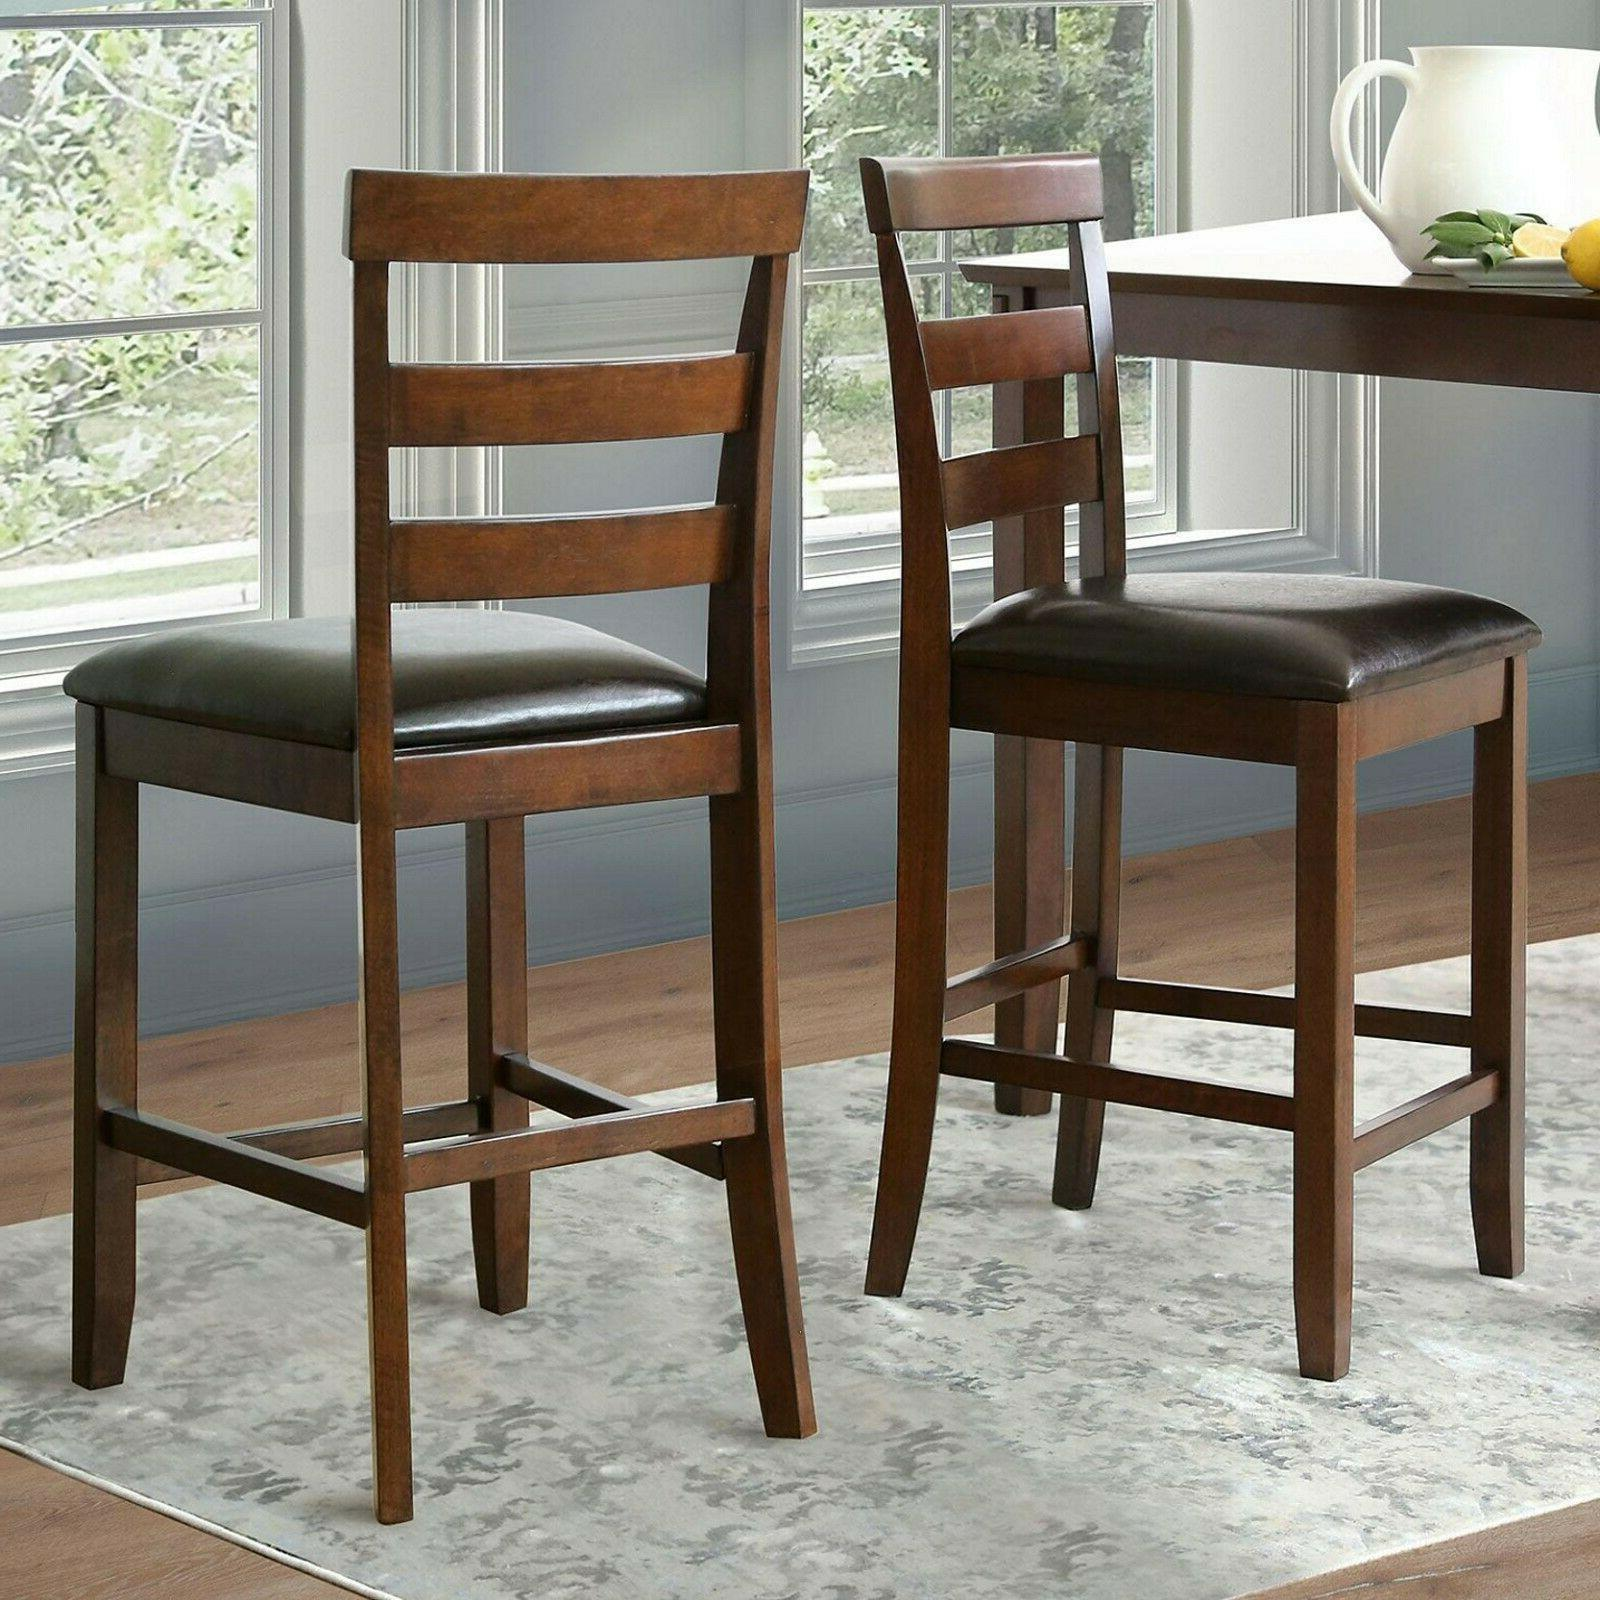 Sycamore 5-Piece Dining Set Abbyson SHIPPING